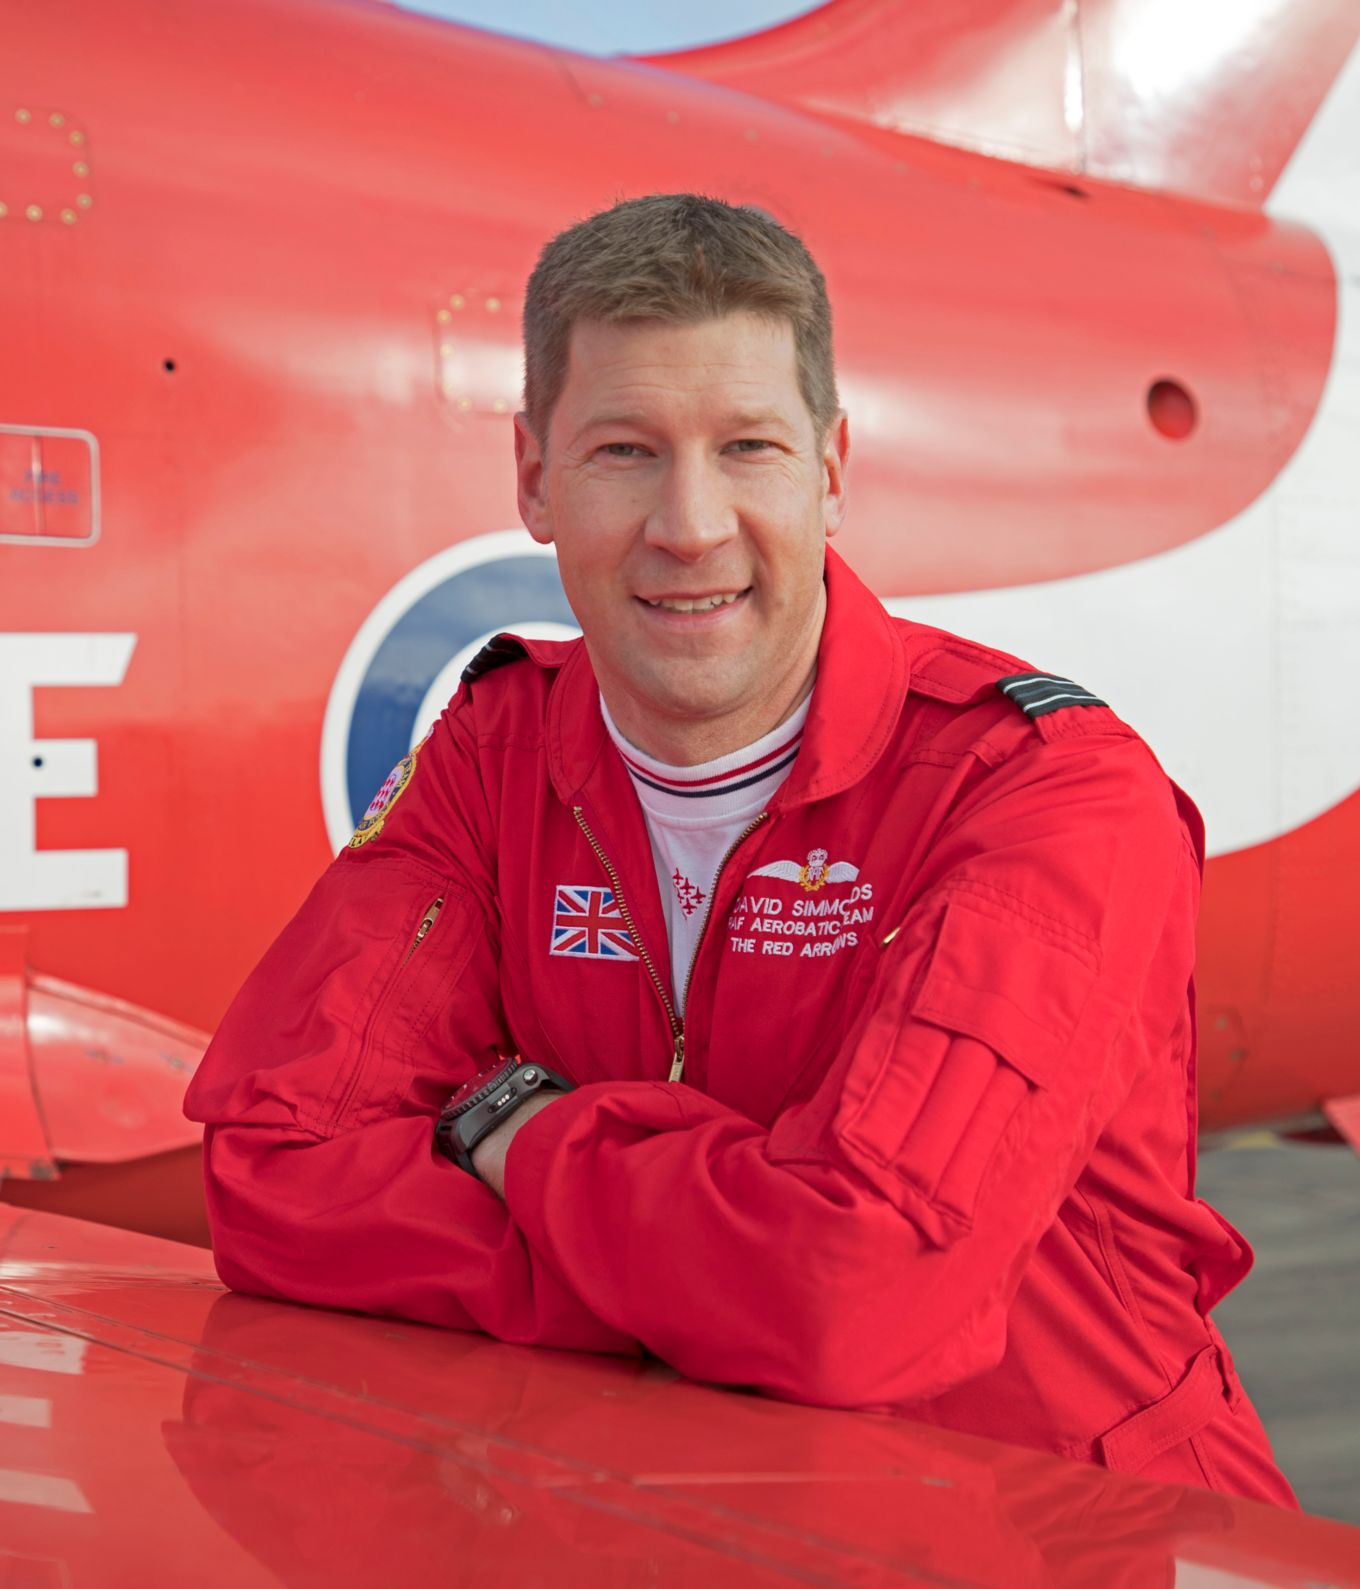 Red 5 in 2020 will be Flight Lieutenant David Simmonds.